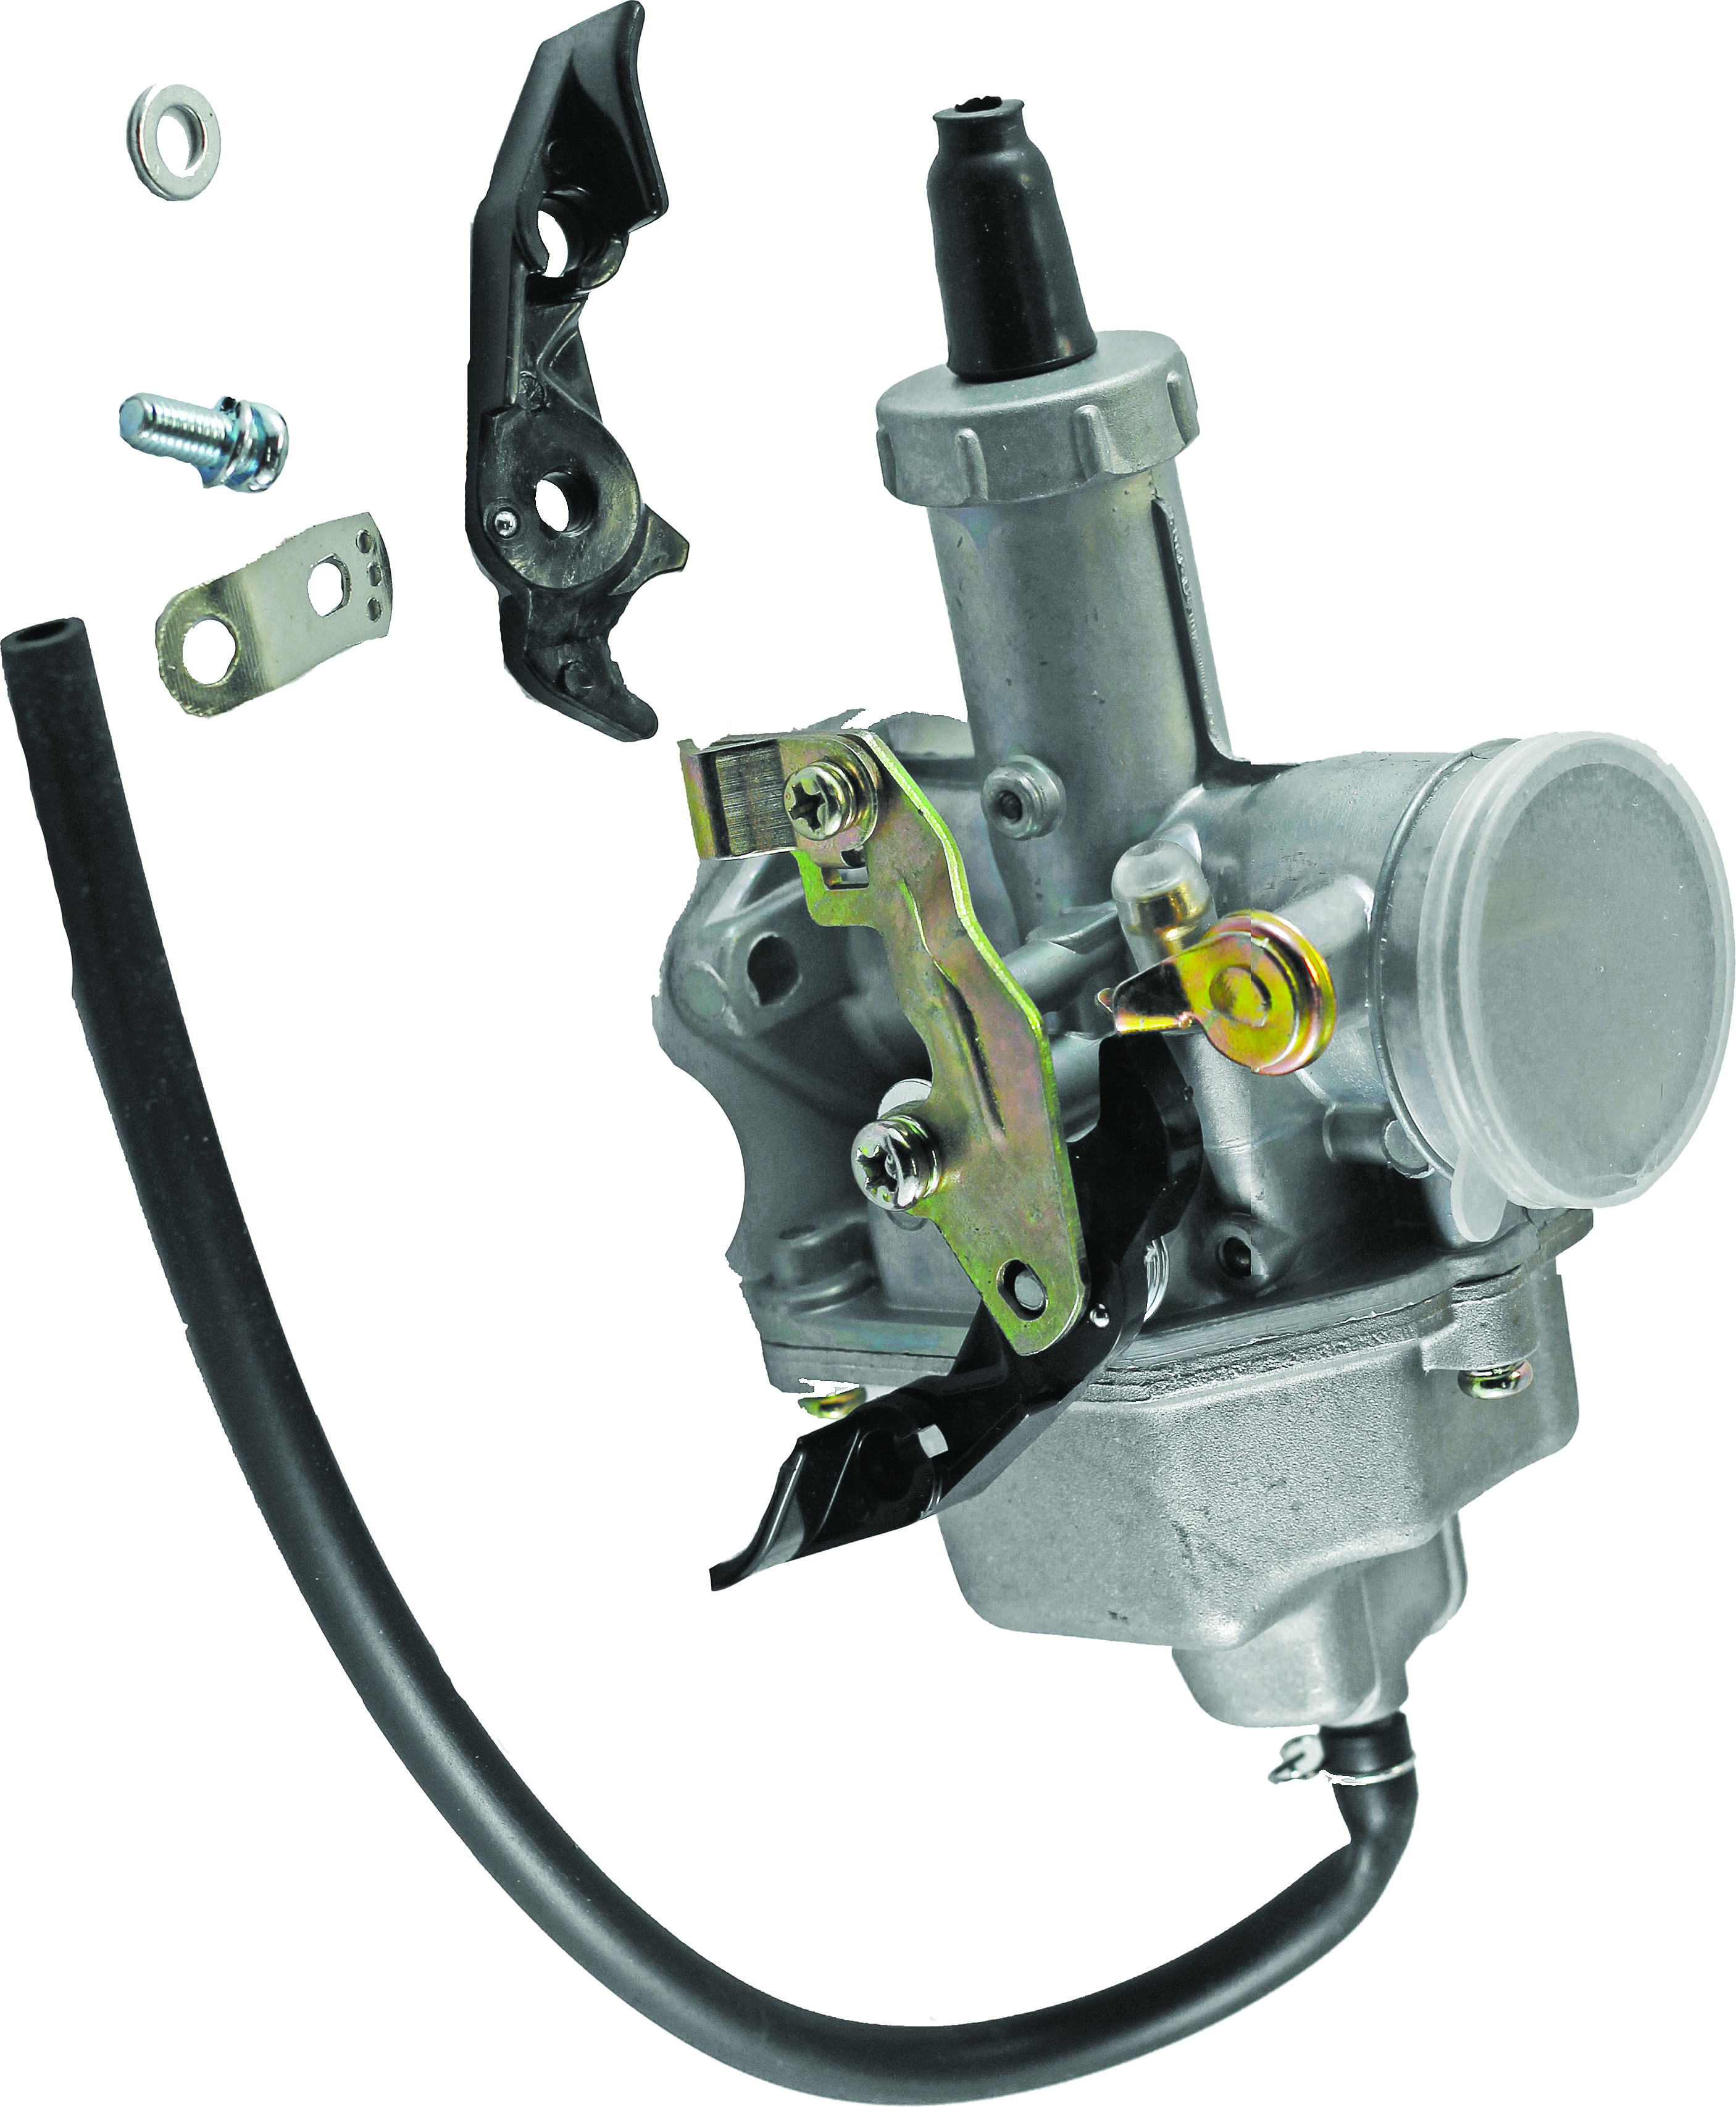 4-STROKE CARBURETOR 26mm 125-150cc